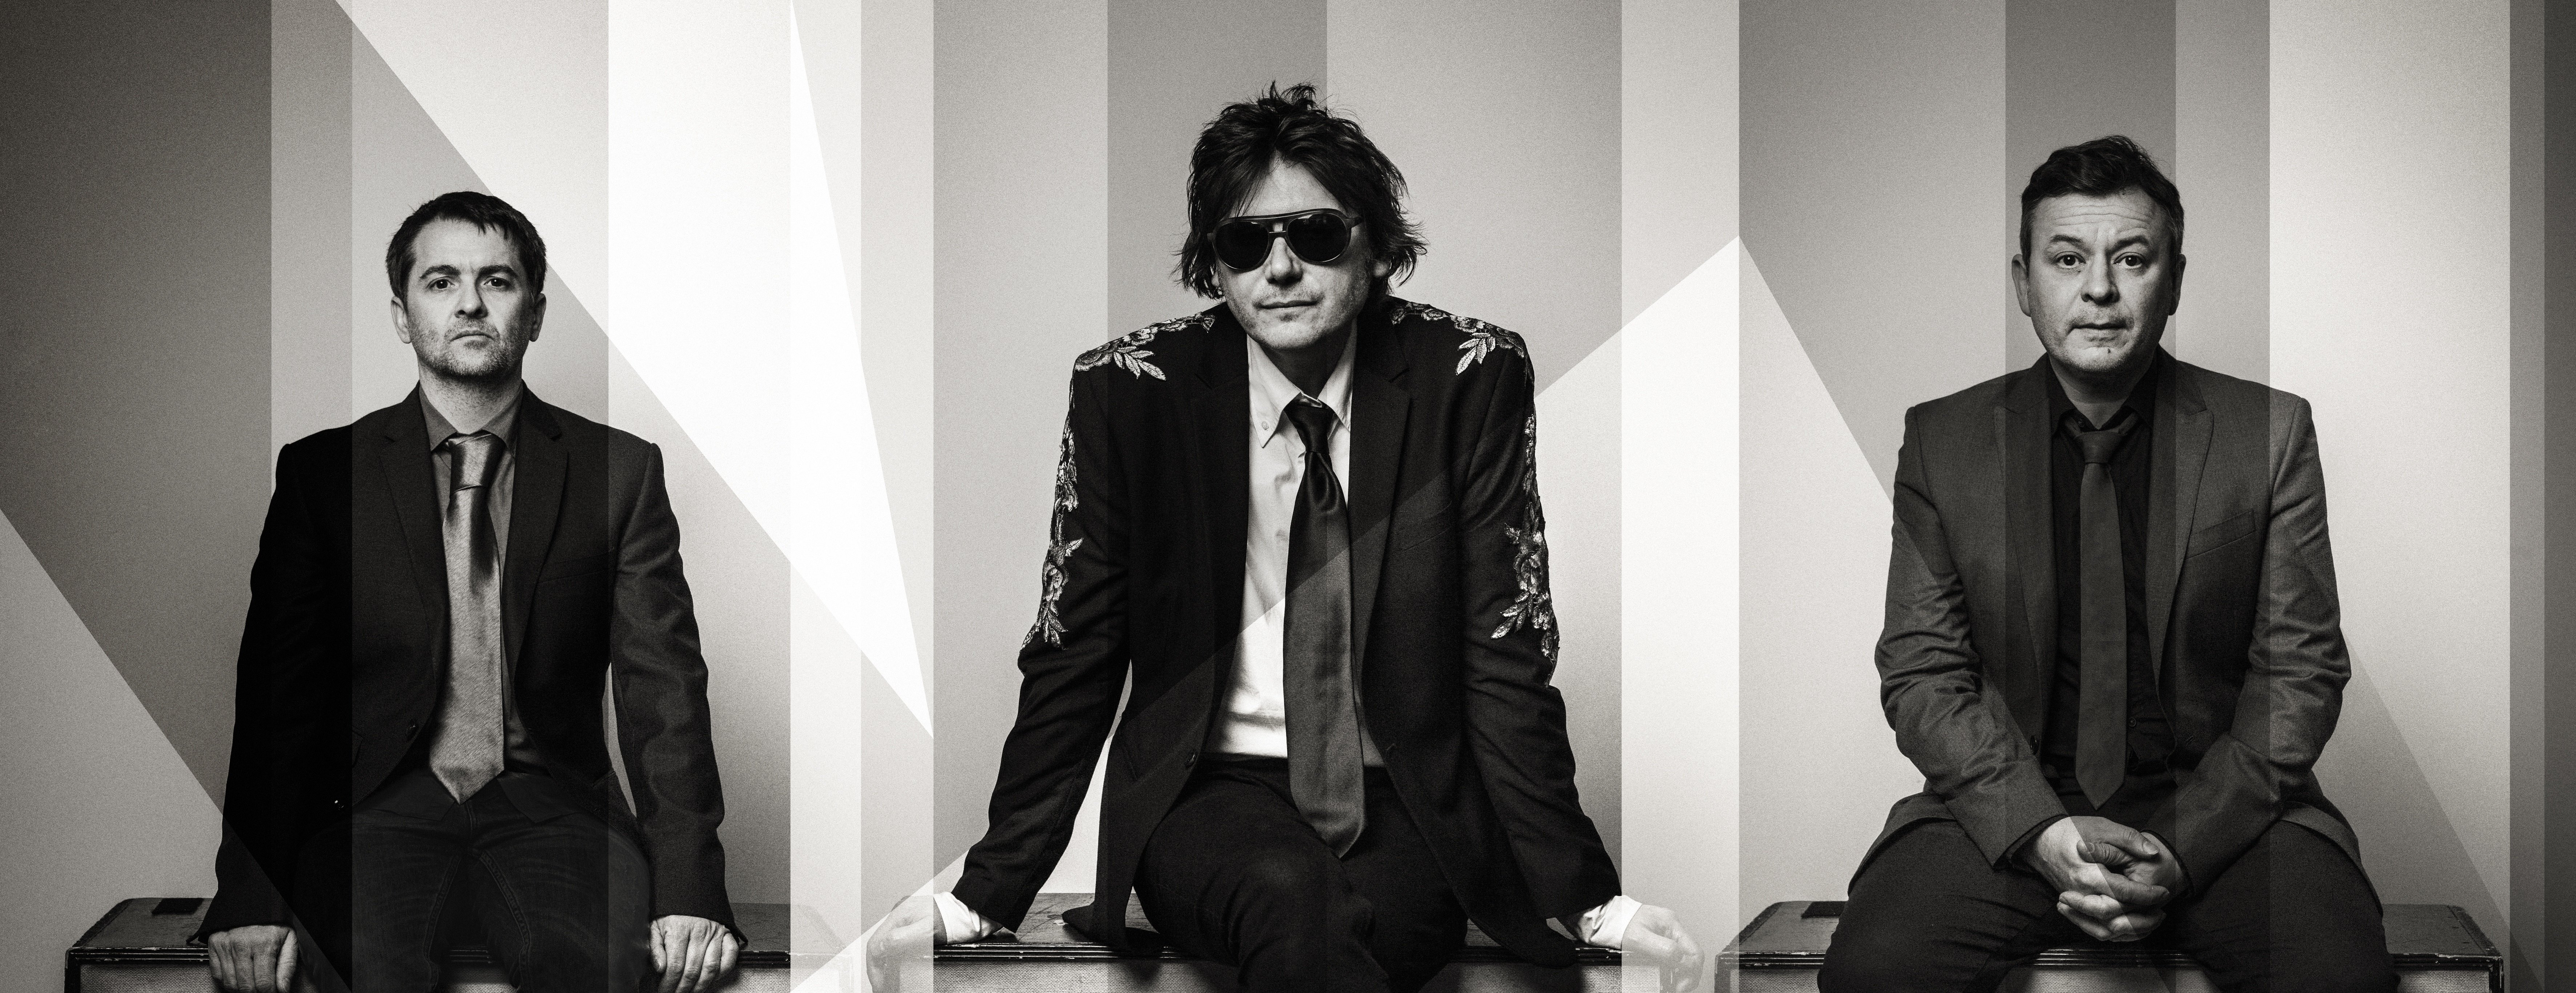 NEWS: Manics release album track 'Dylan and Caitlin' feat The Anchoress